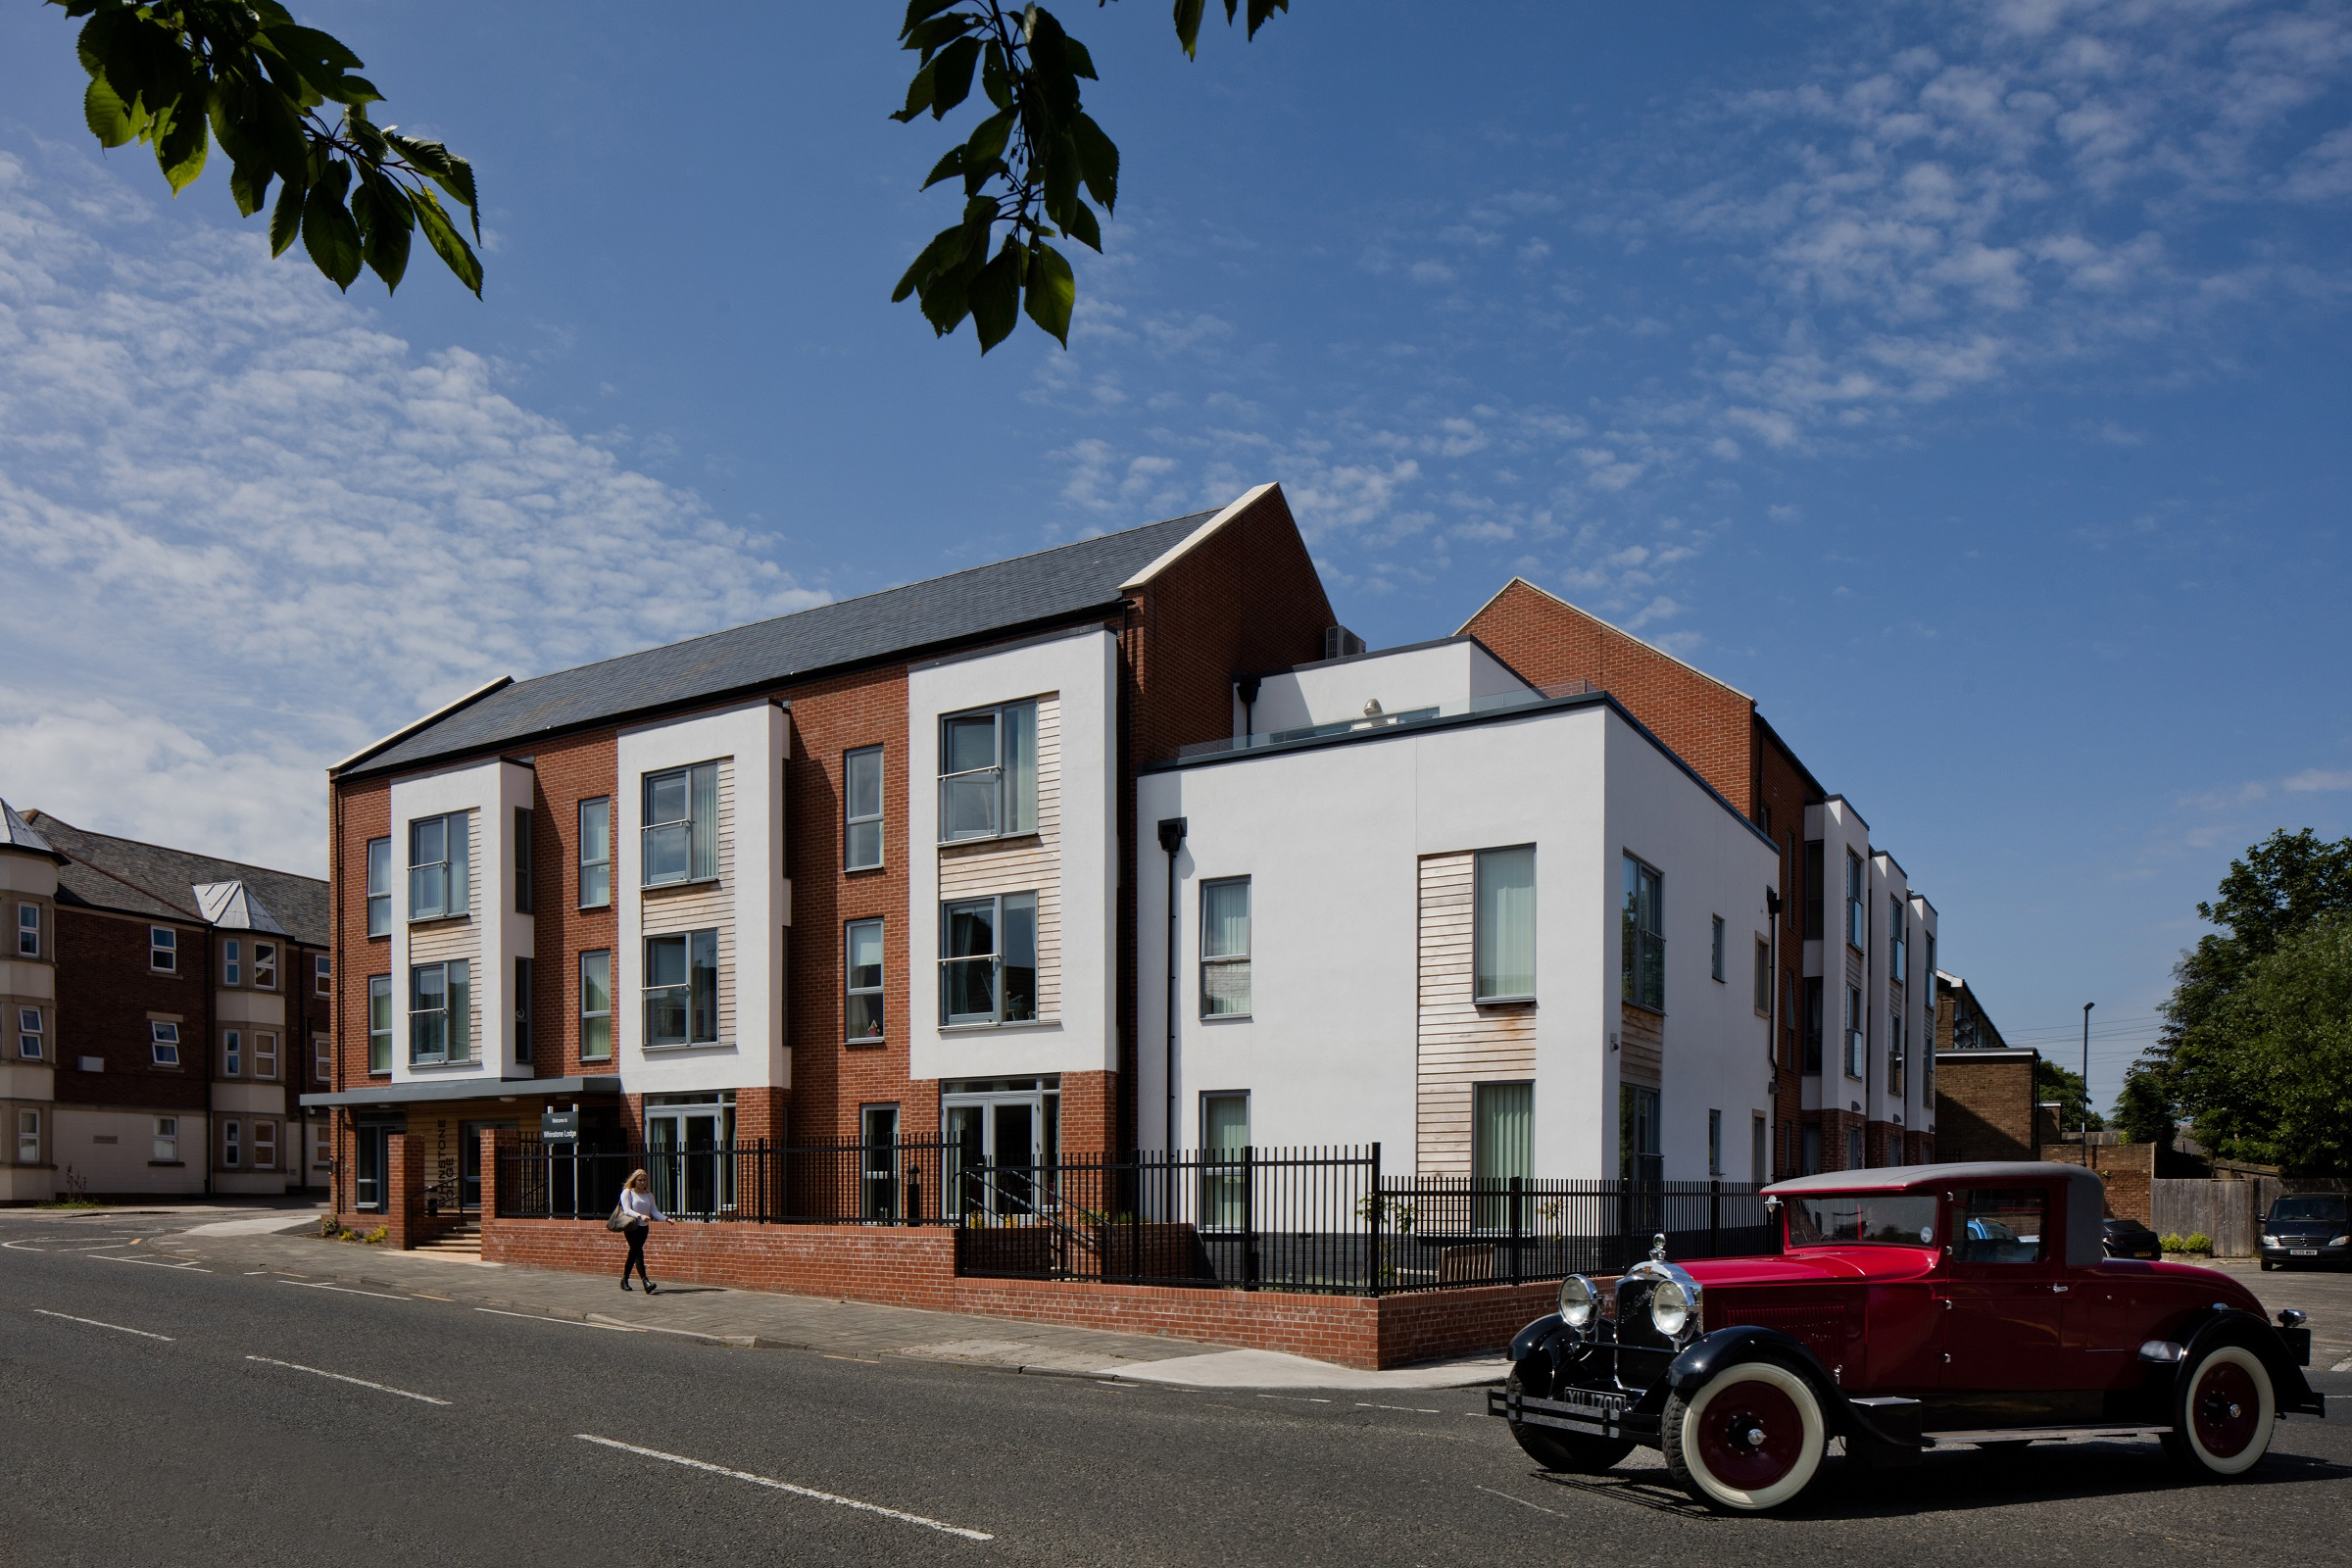 Pioneering housing project in North Tyneside | News | Space